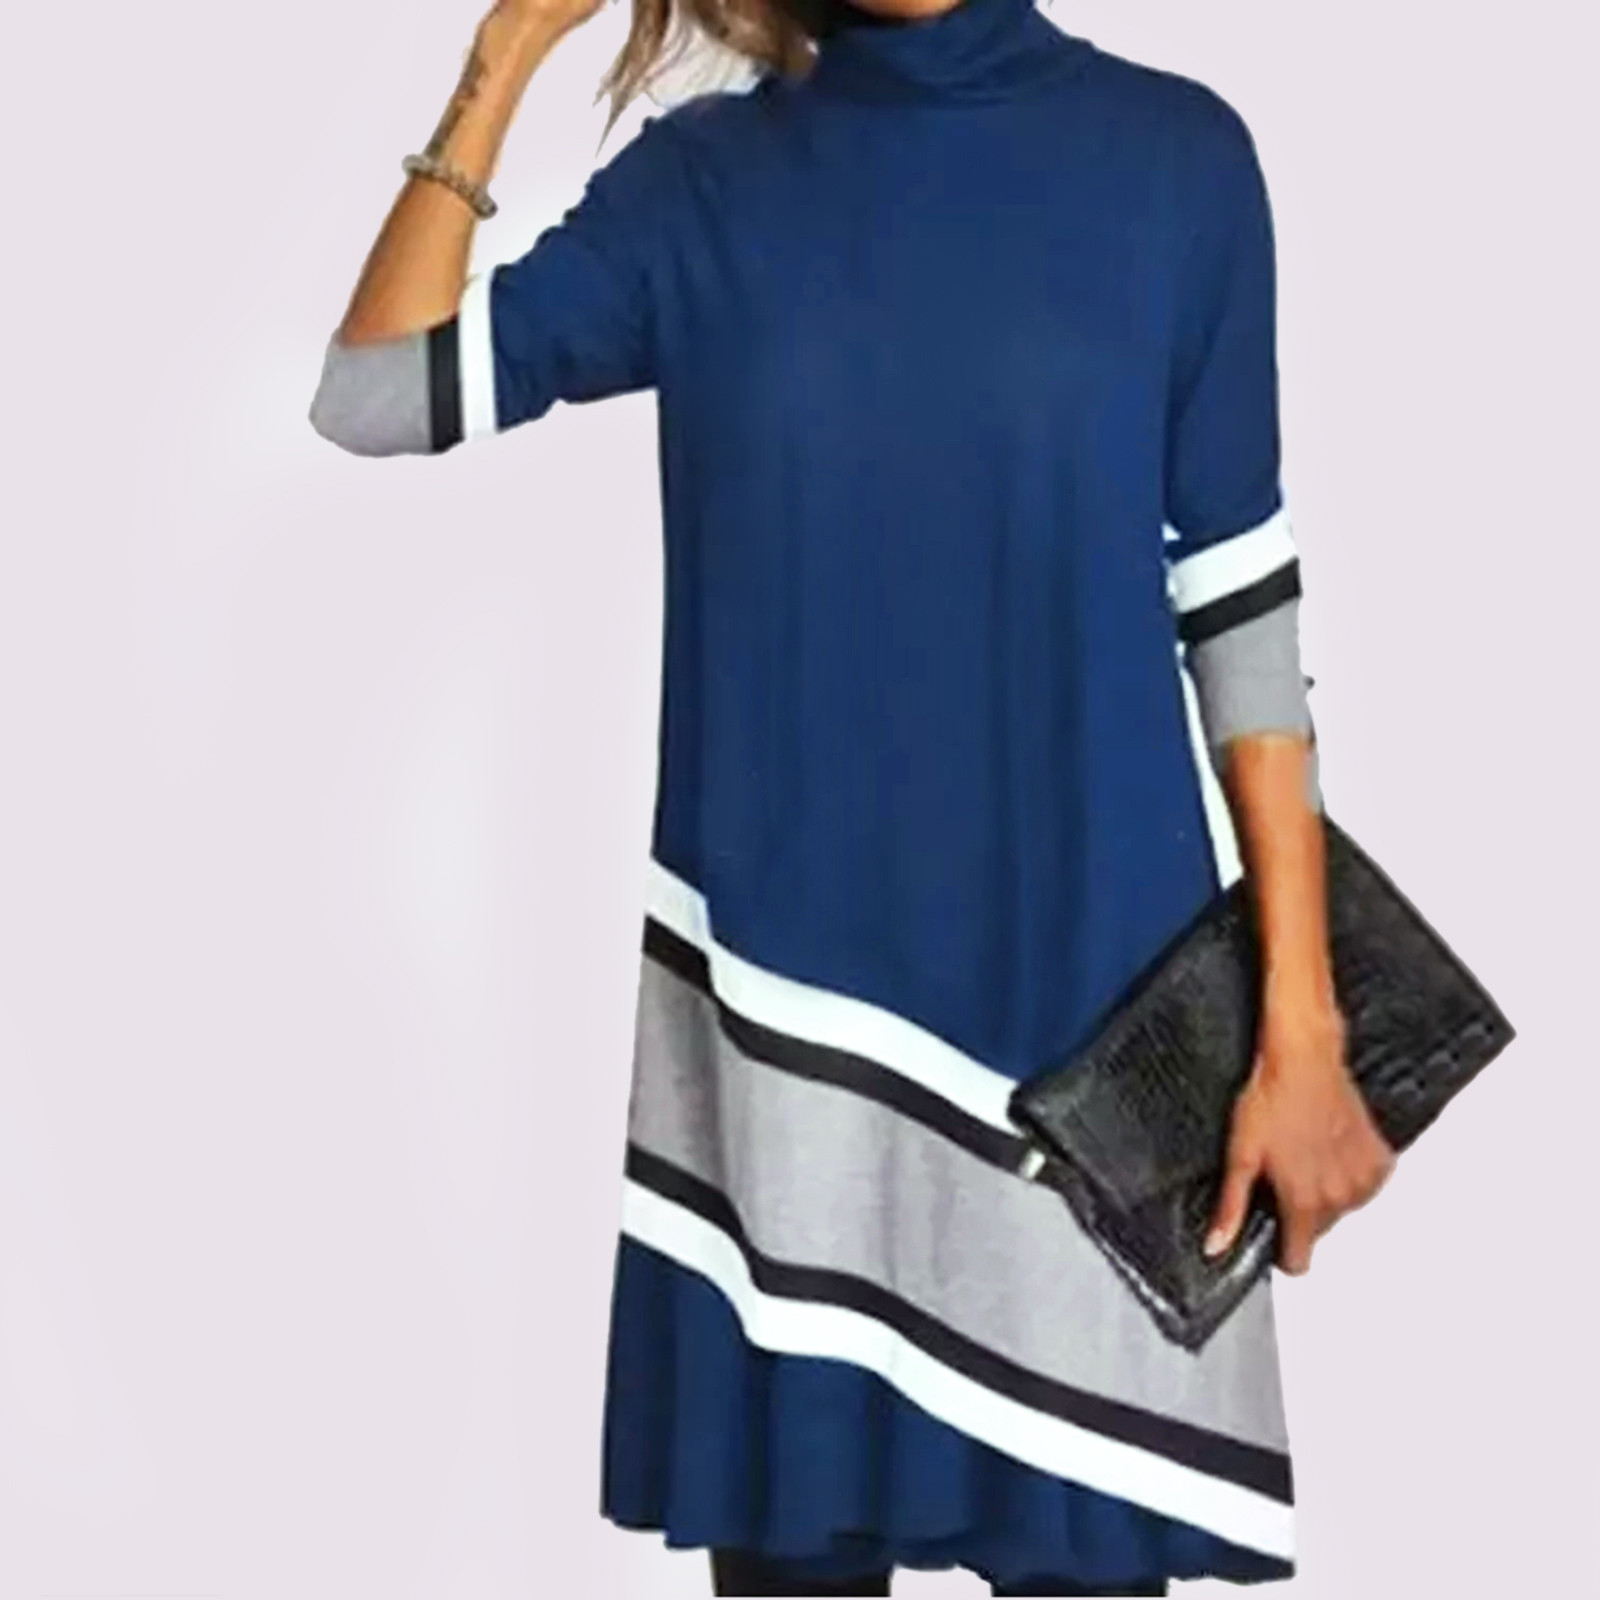 Dresses For Women Lady Patchwork printing Long Sleeve O Neck Turtleneck Dress Undefined Vintage Sexy Party